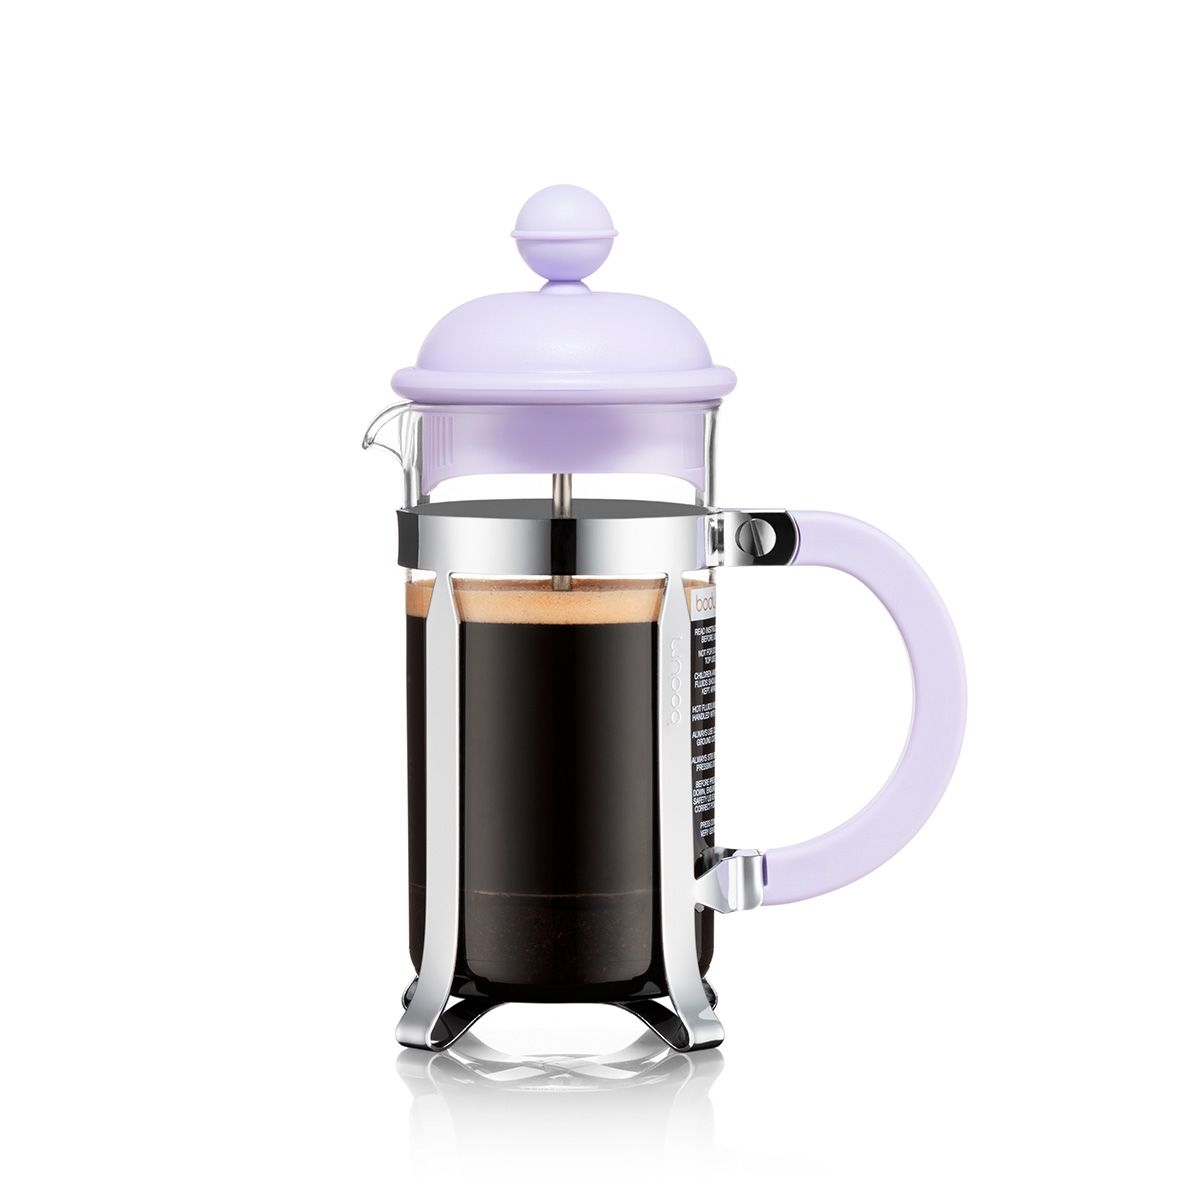 Bodum Caffettiera Coffee Maker, 3 Cup - Verbena Purple - NEW Collection